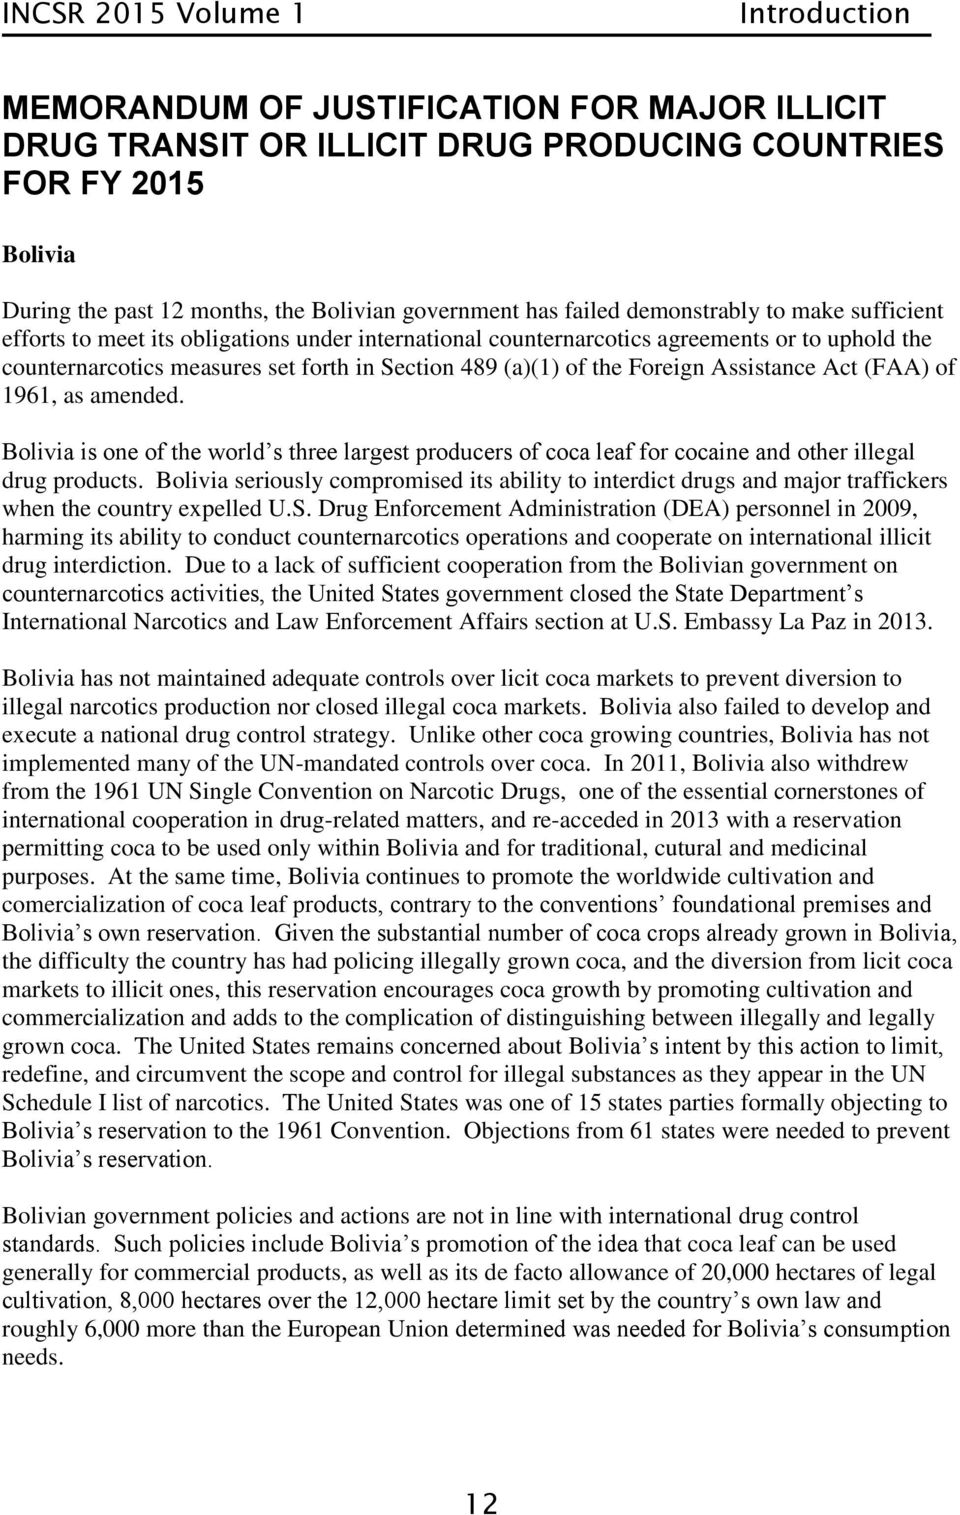 Foreign Assistance Act (FAA) of 1961, as amended. Bolivia is one of the world s three largest producers of coca leaf for cocaine and other illegal drug products.